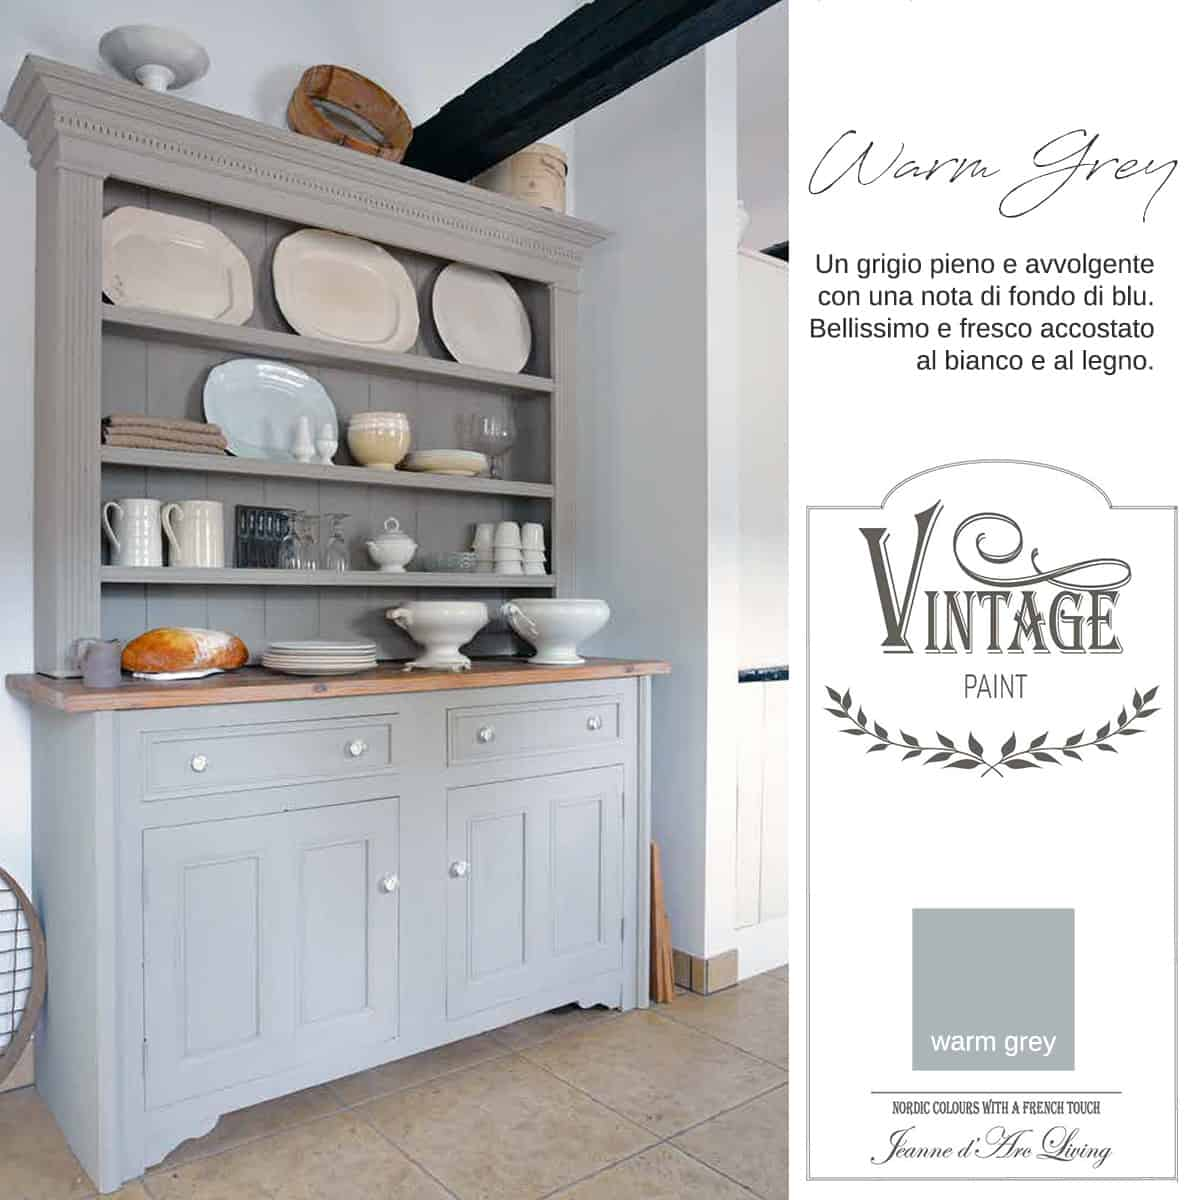 Warm Grey Vernice Vintage Chalk Paint Vintagepaint